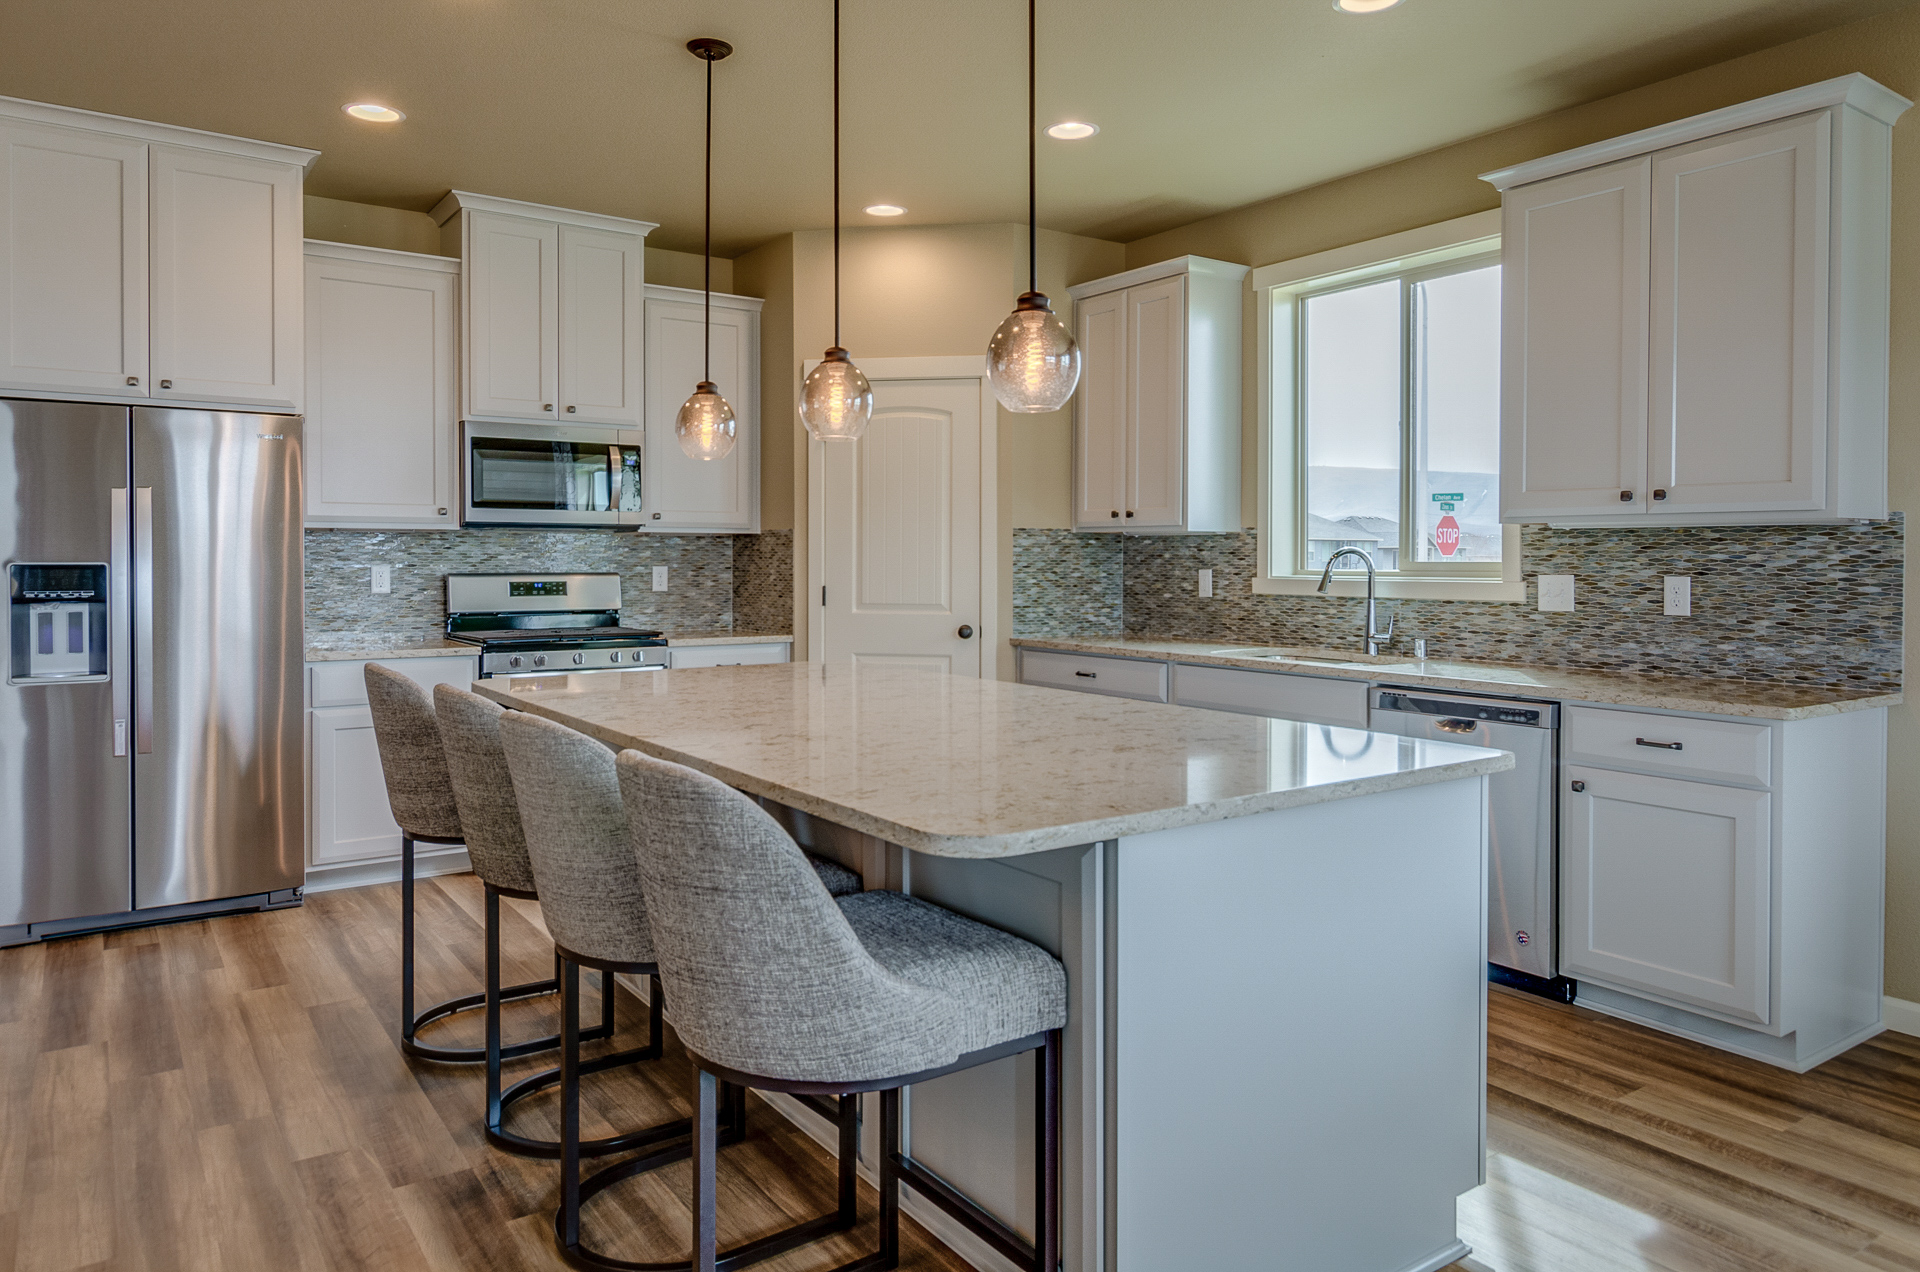 Rose's Place Phase 2 in Moxee | Aho Construction